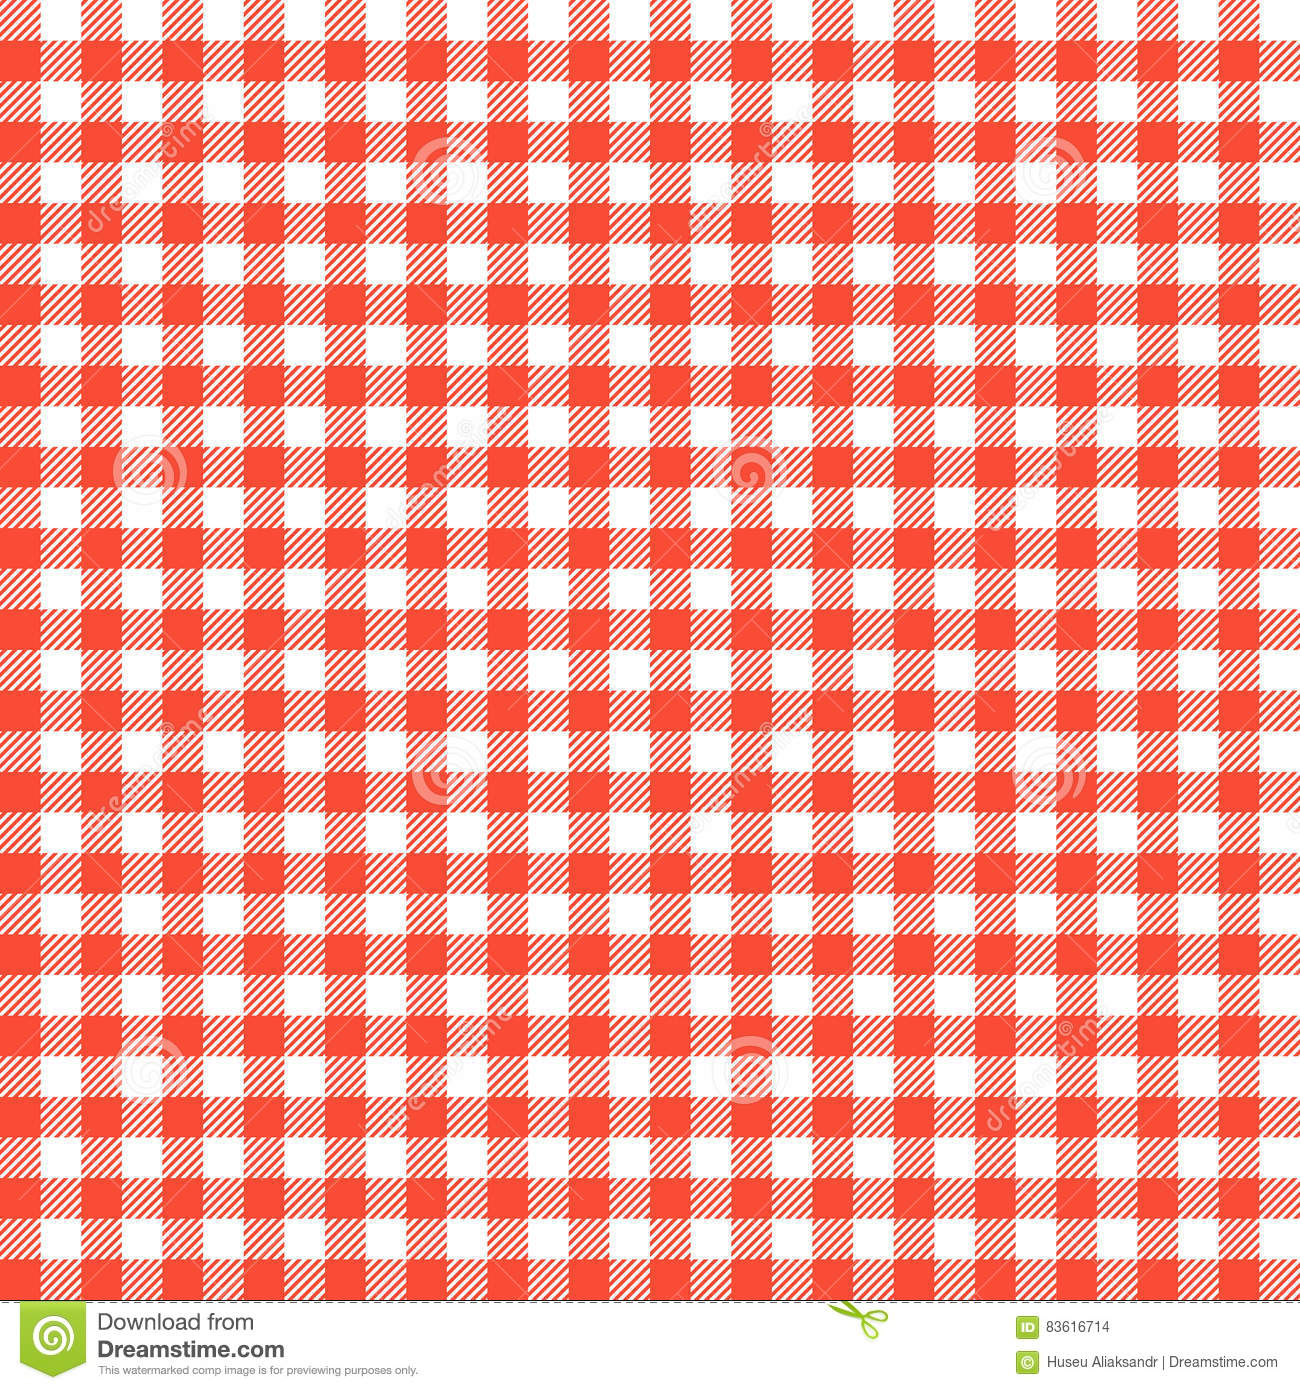 red checkered tablecloths patterns stock vector illustration of